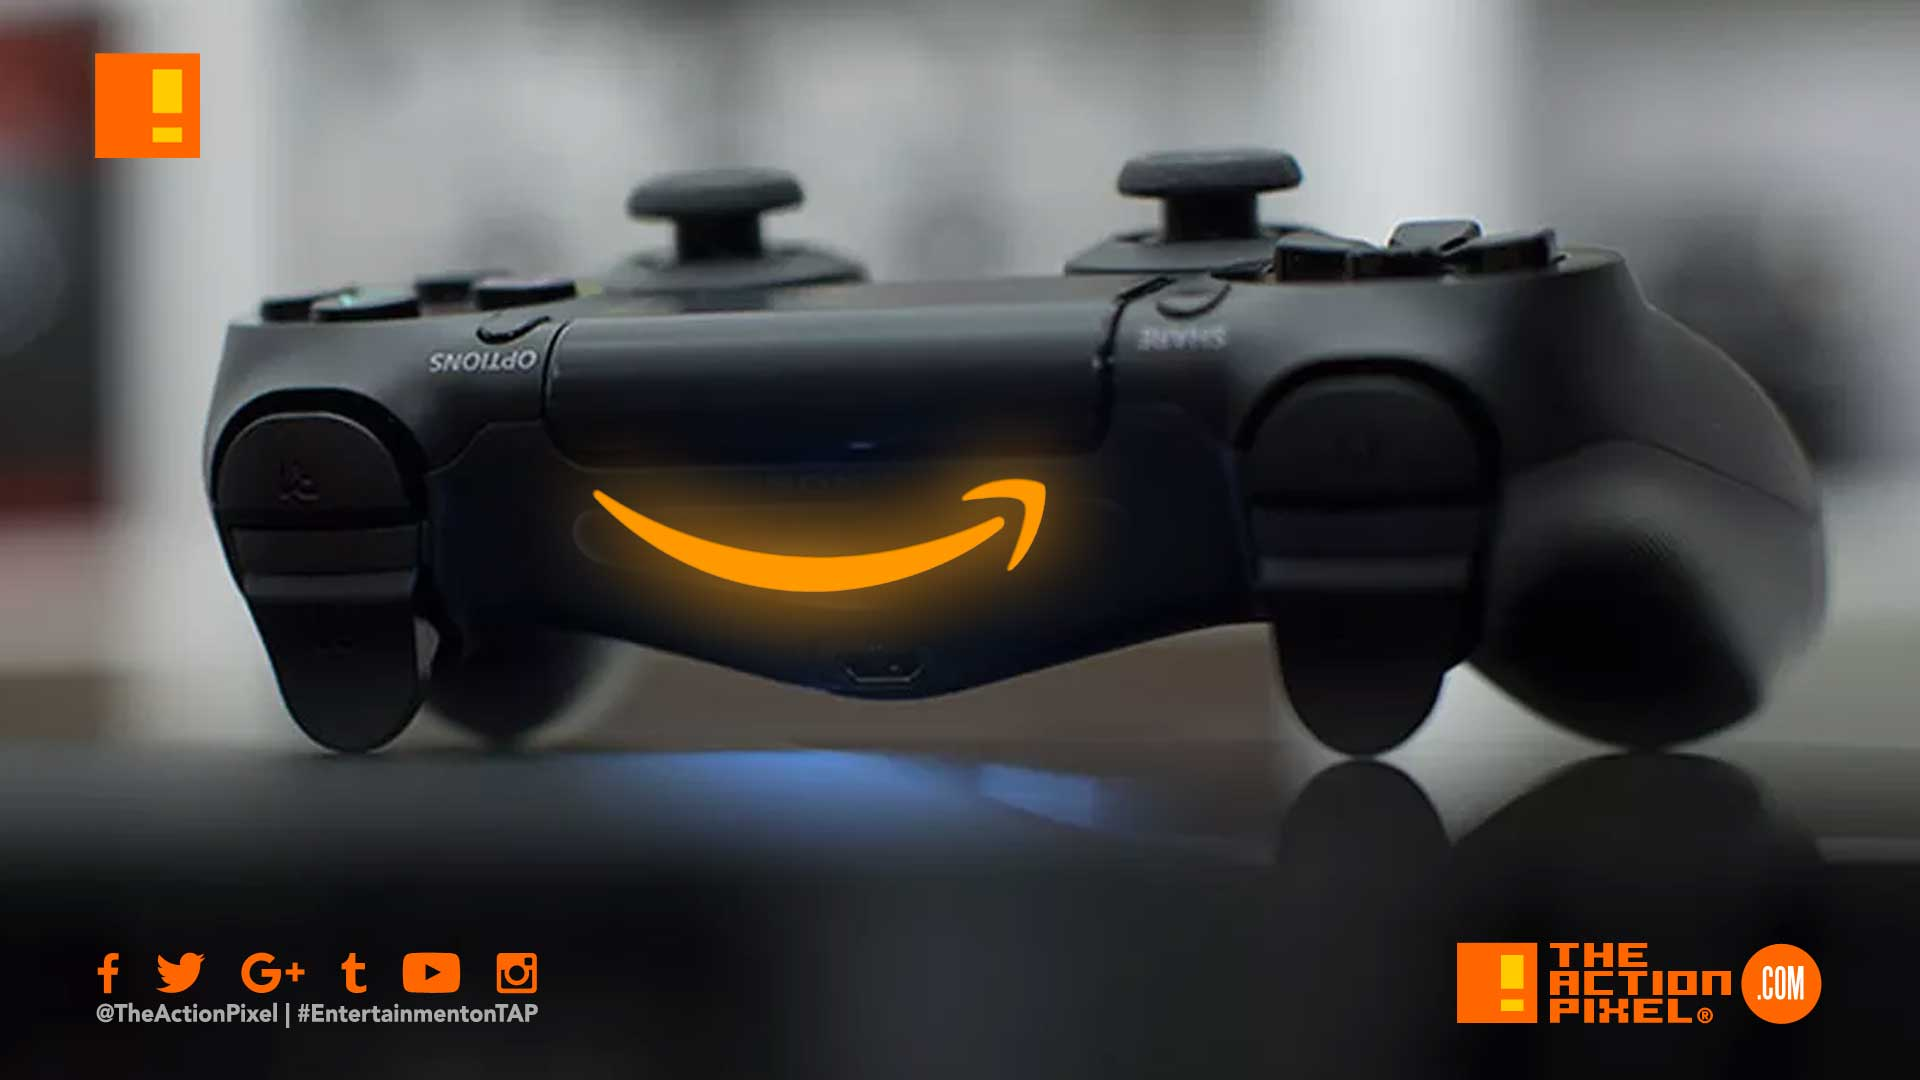 amazon,streaming, video game streaming, the action pixel, entertainment on tap